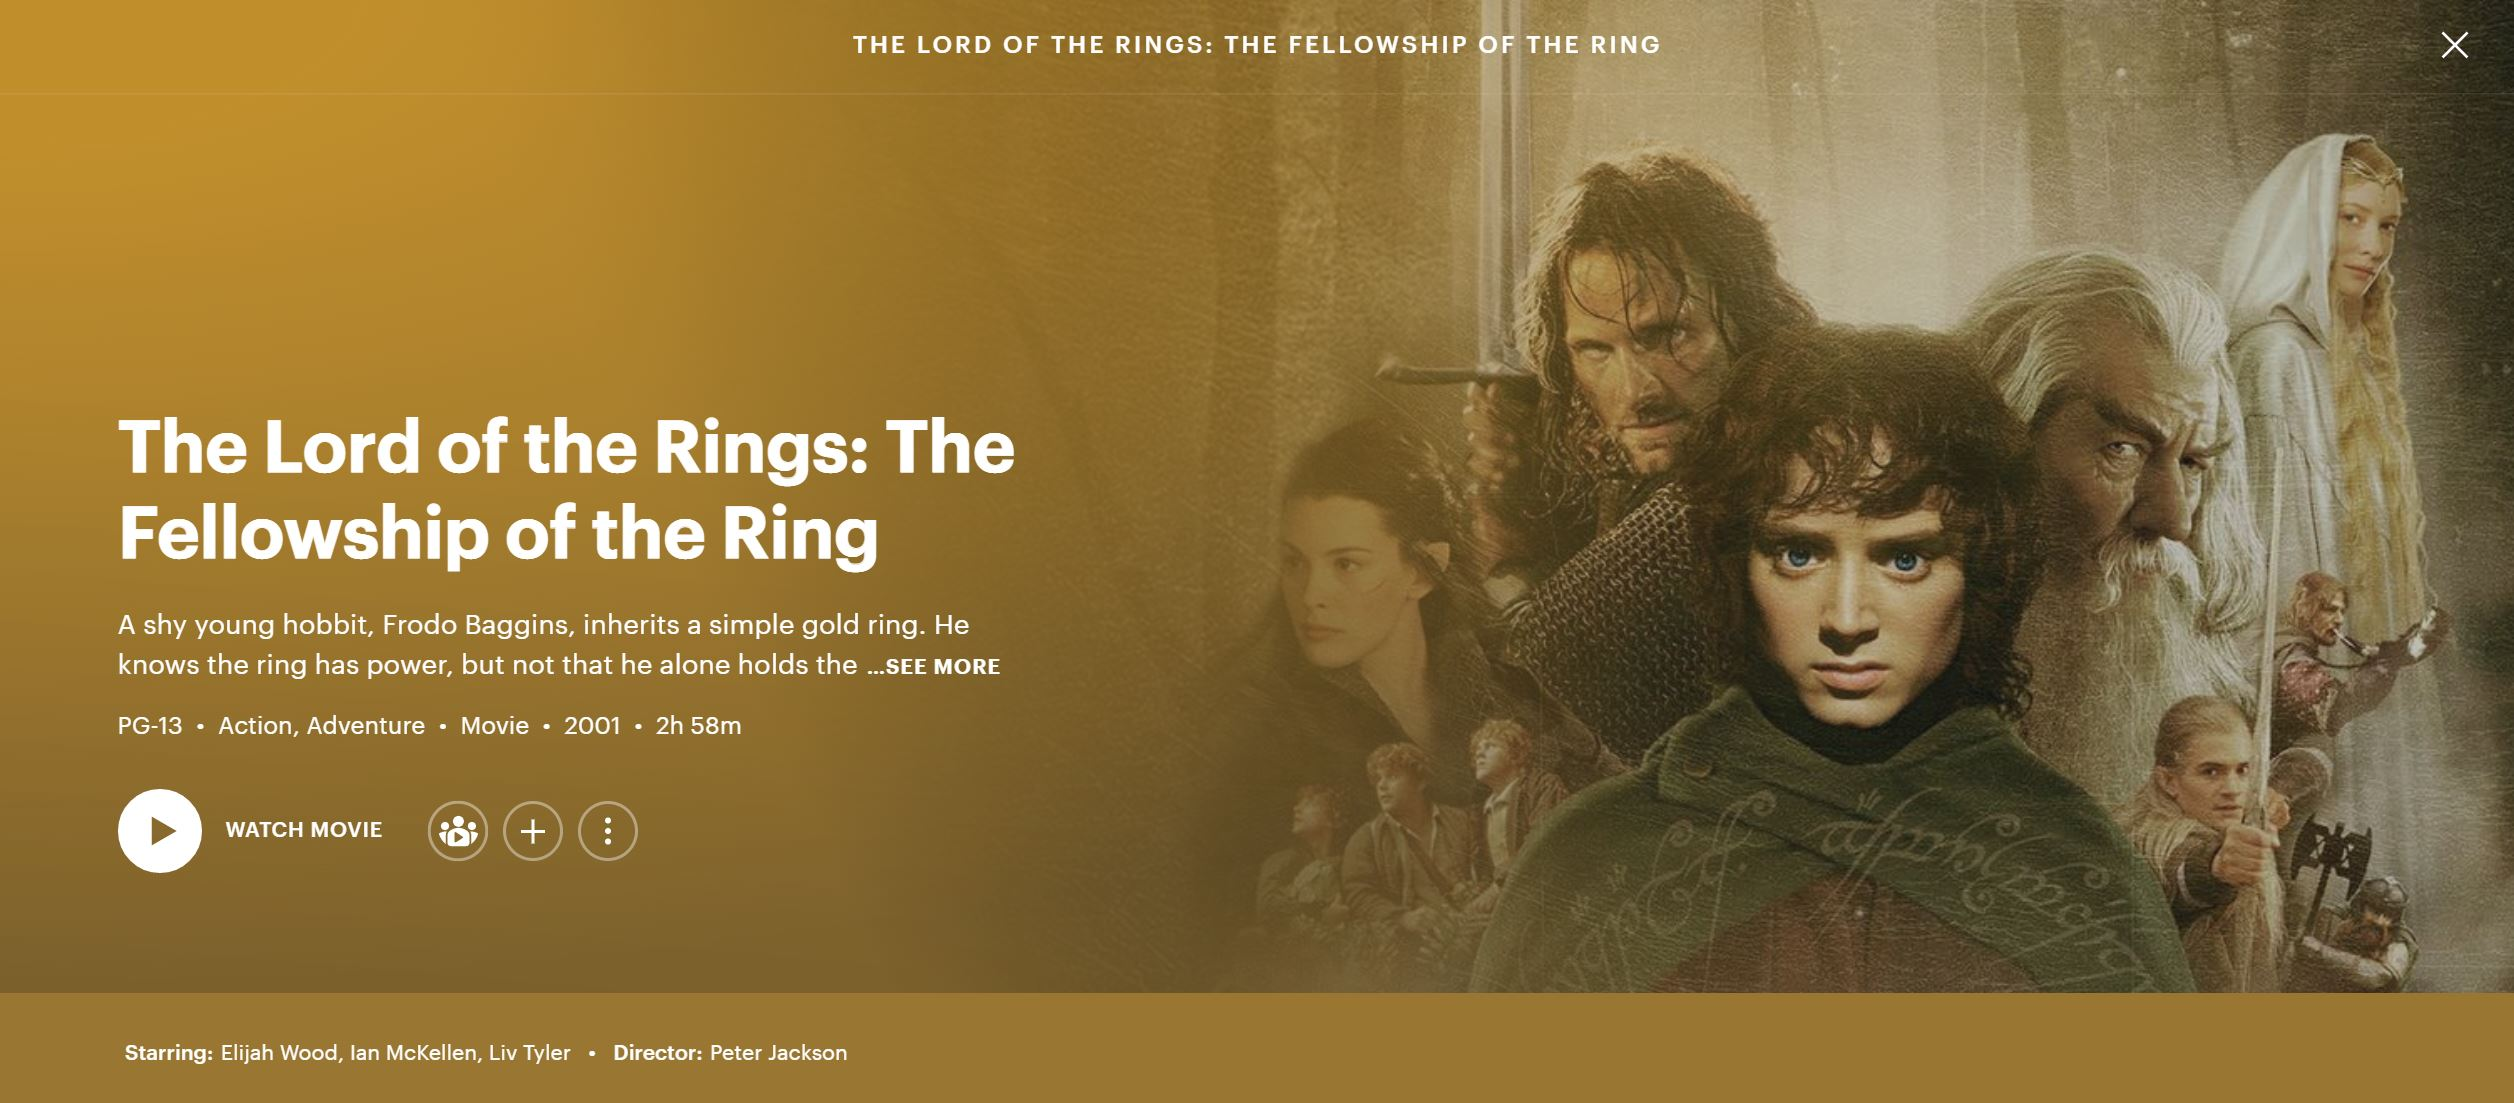 The Lord of the Rings streaming on hulu banner